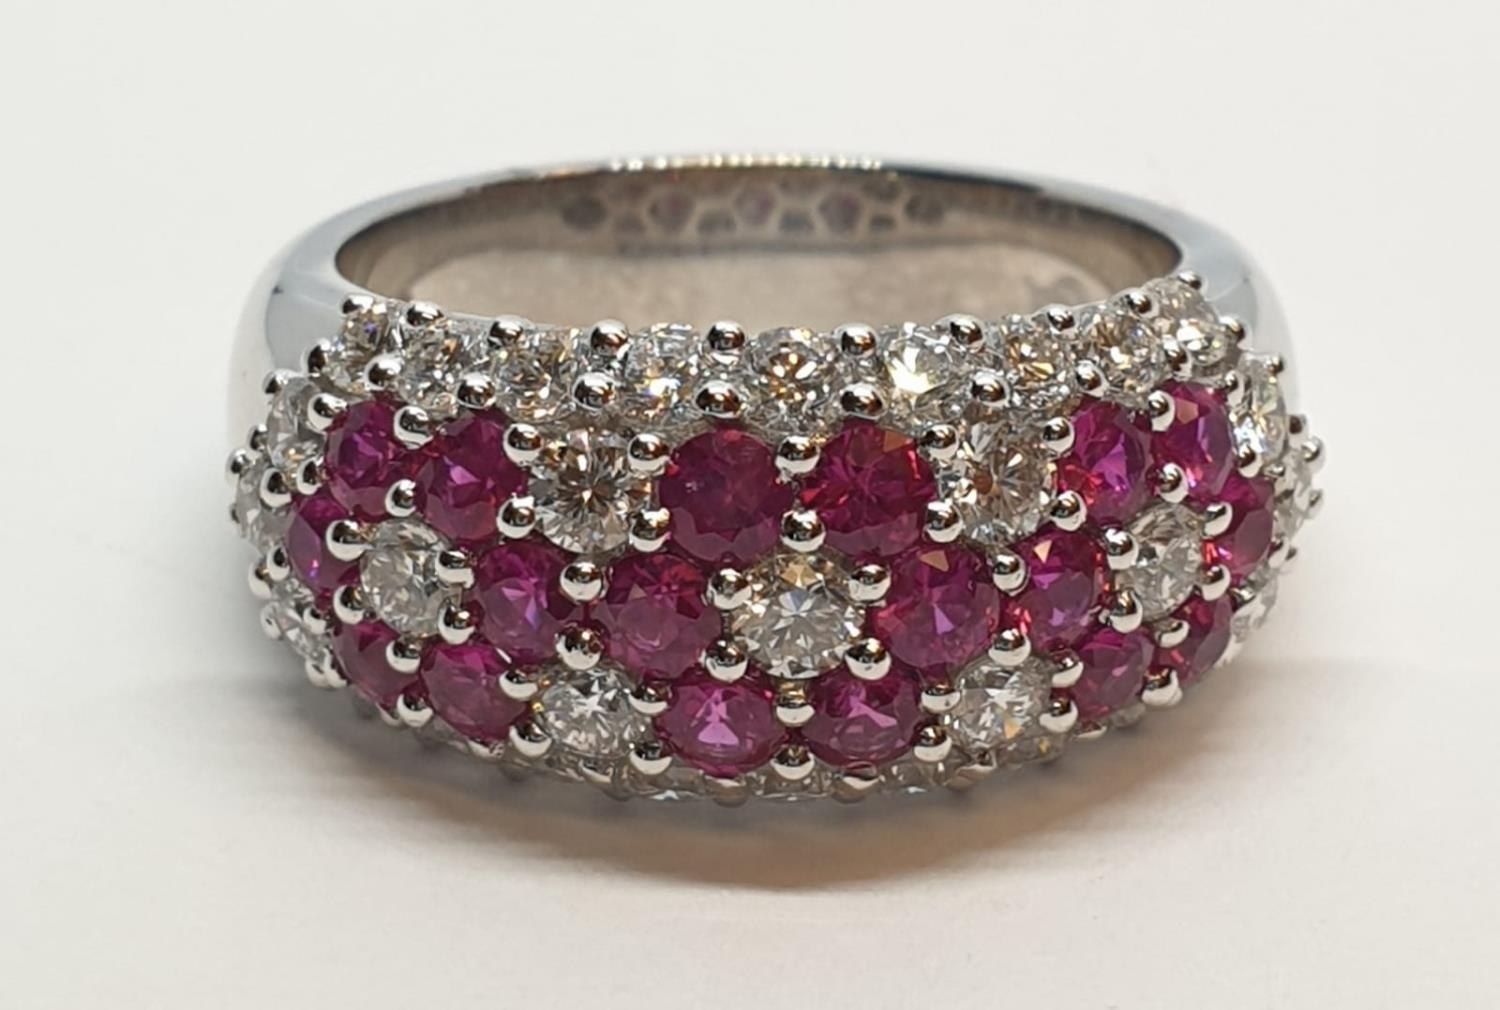 18ct white gold ring with over 1ct ruby and 1.8ct diamonds in flower design, weight 9.39g and size M - Image 2 of 11